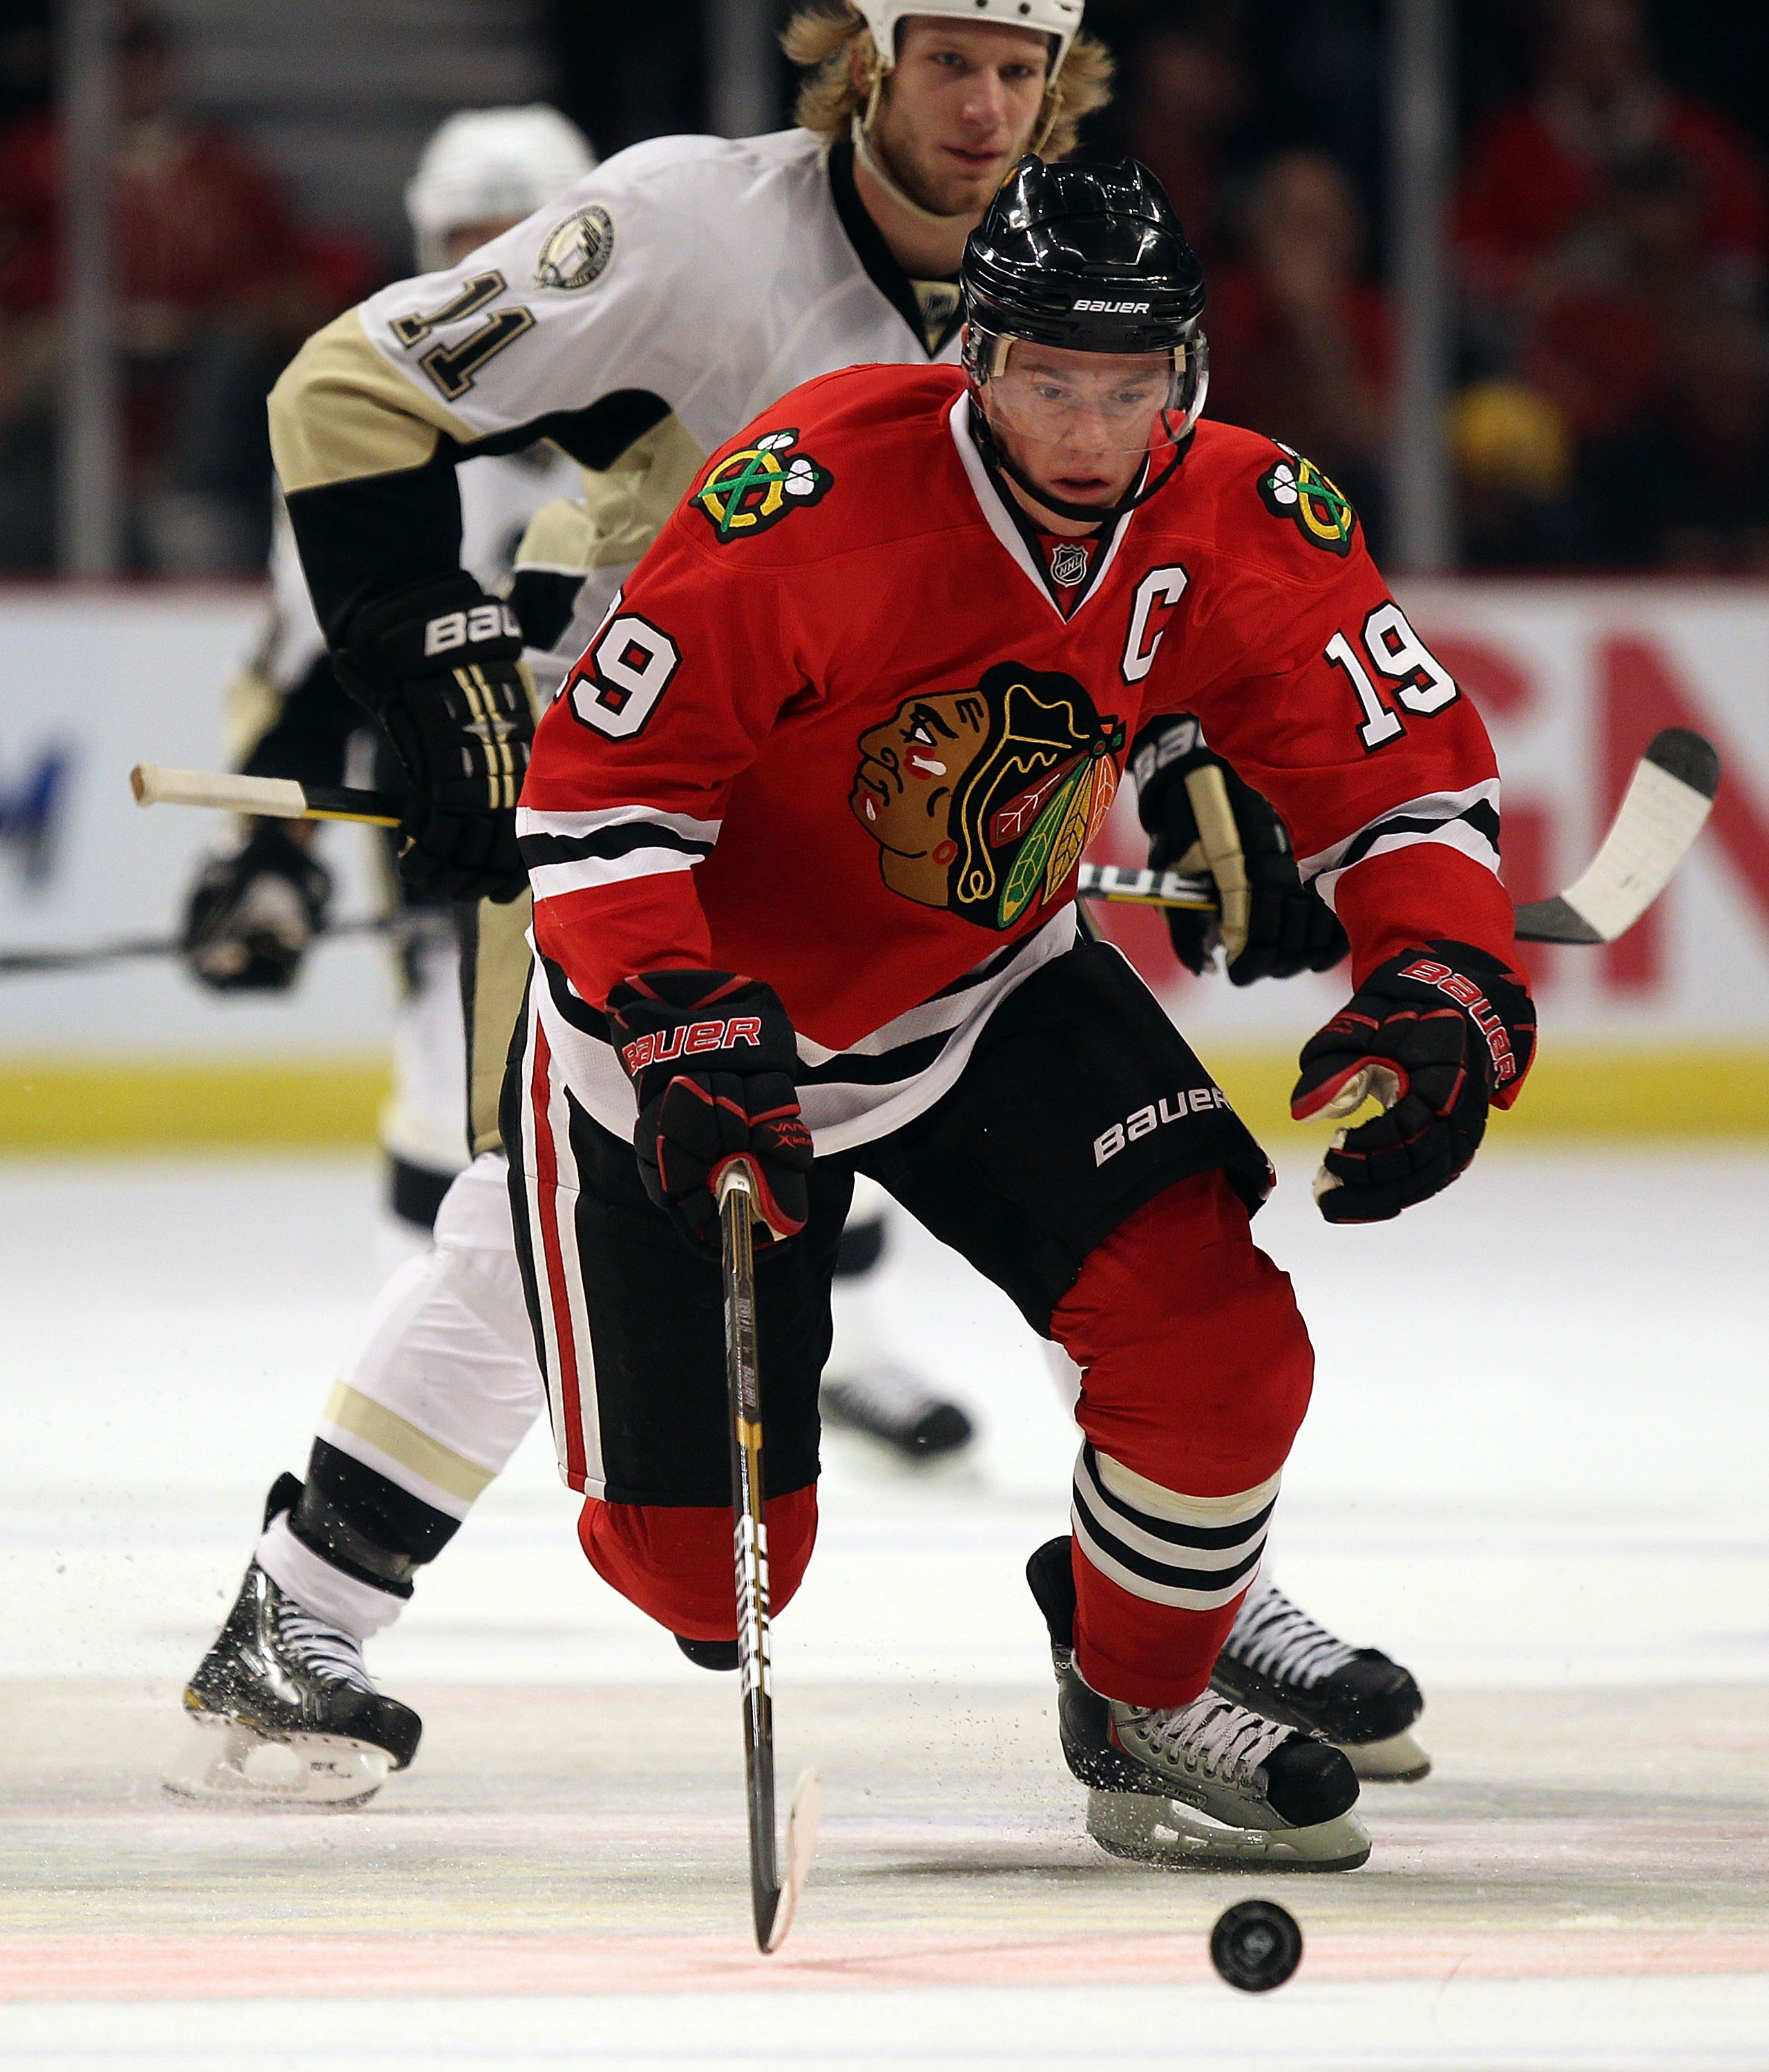 CHICAGO, IL - FEBRUARY 20: Jonathan Toews #19 of the Chicago Blackhawks chases down the puck in front of Jordan Staal #11 of the Pittsburgh Penguins at the United Center on February 20, 2011 in Chicago, Illinois. (Photo by Jonathan Daniel/Getty Images)